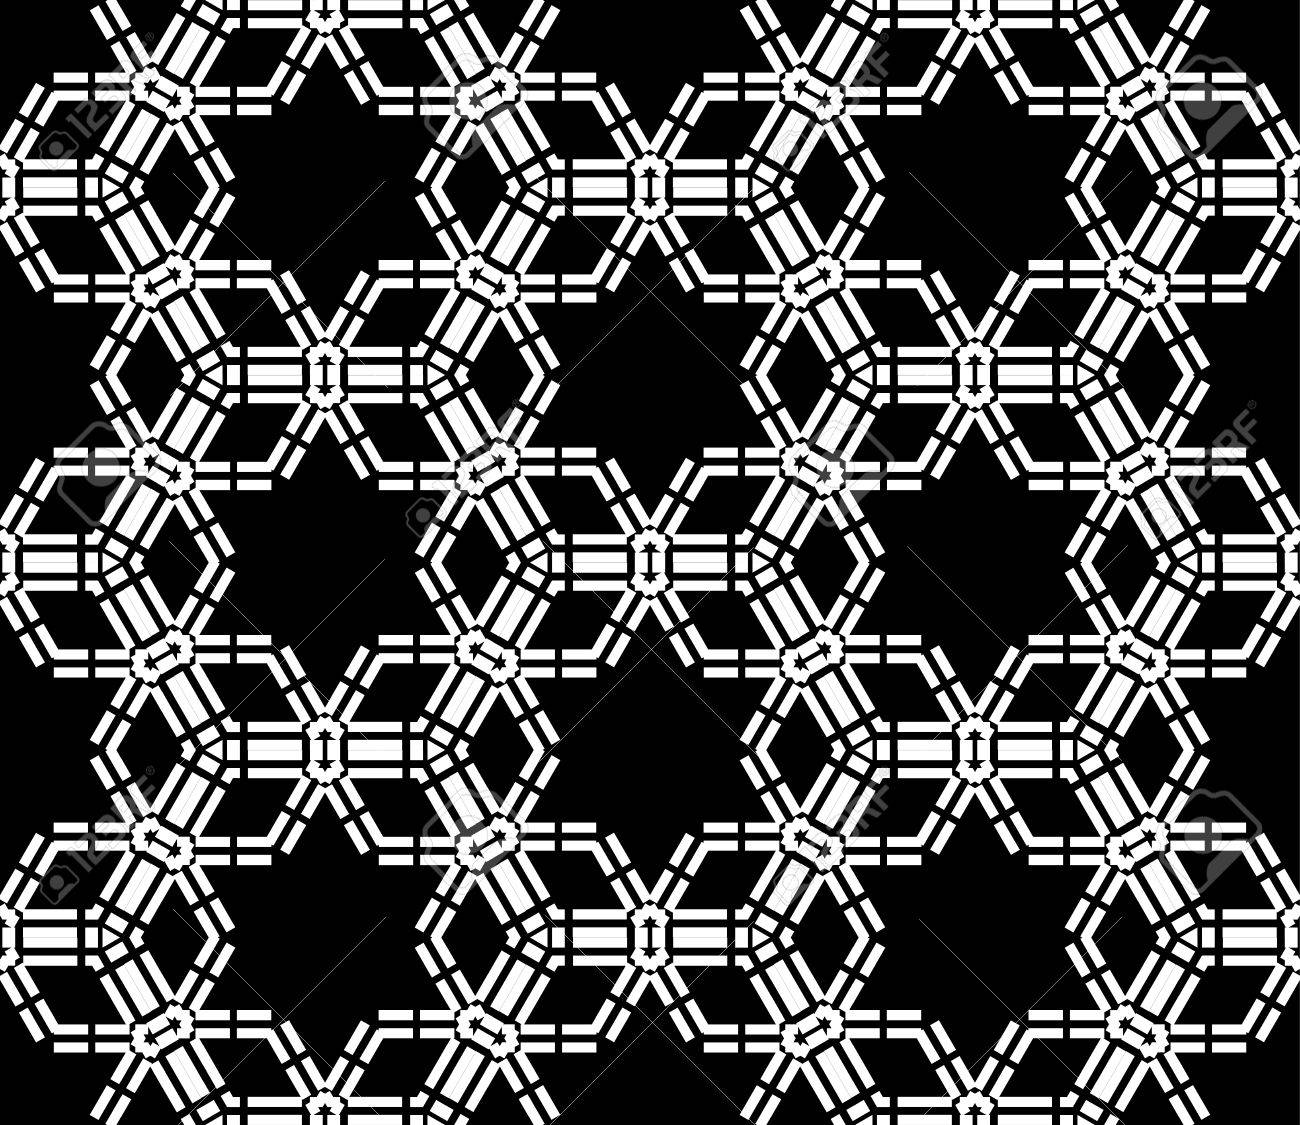 Bed sheet pattern texture - Vector Vector Modern Seamless Pattern Stars Black And White Textile Print Stylish Background Abstract Texture Monochrome Fashion Design Bed Sheets Or